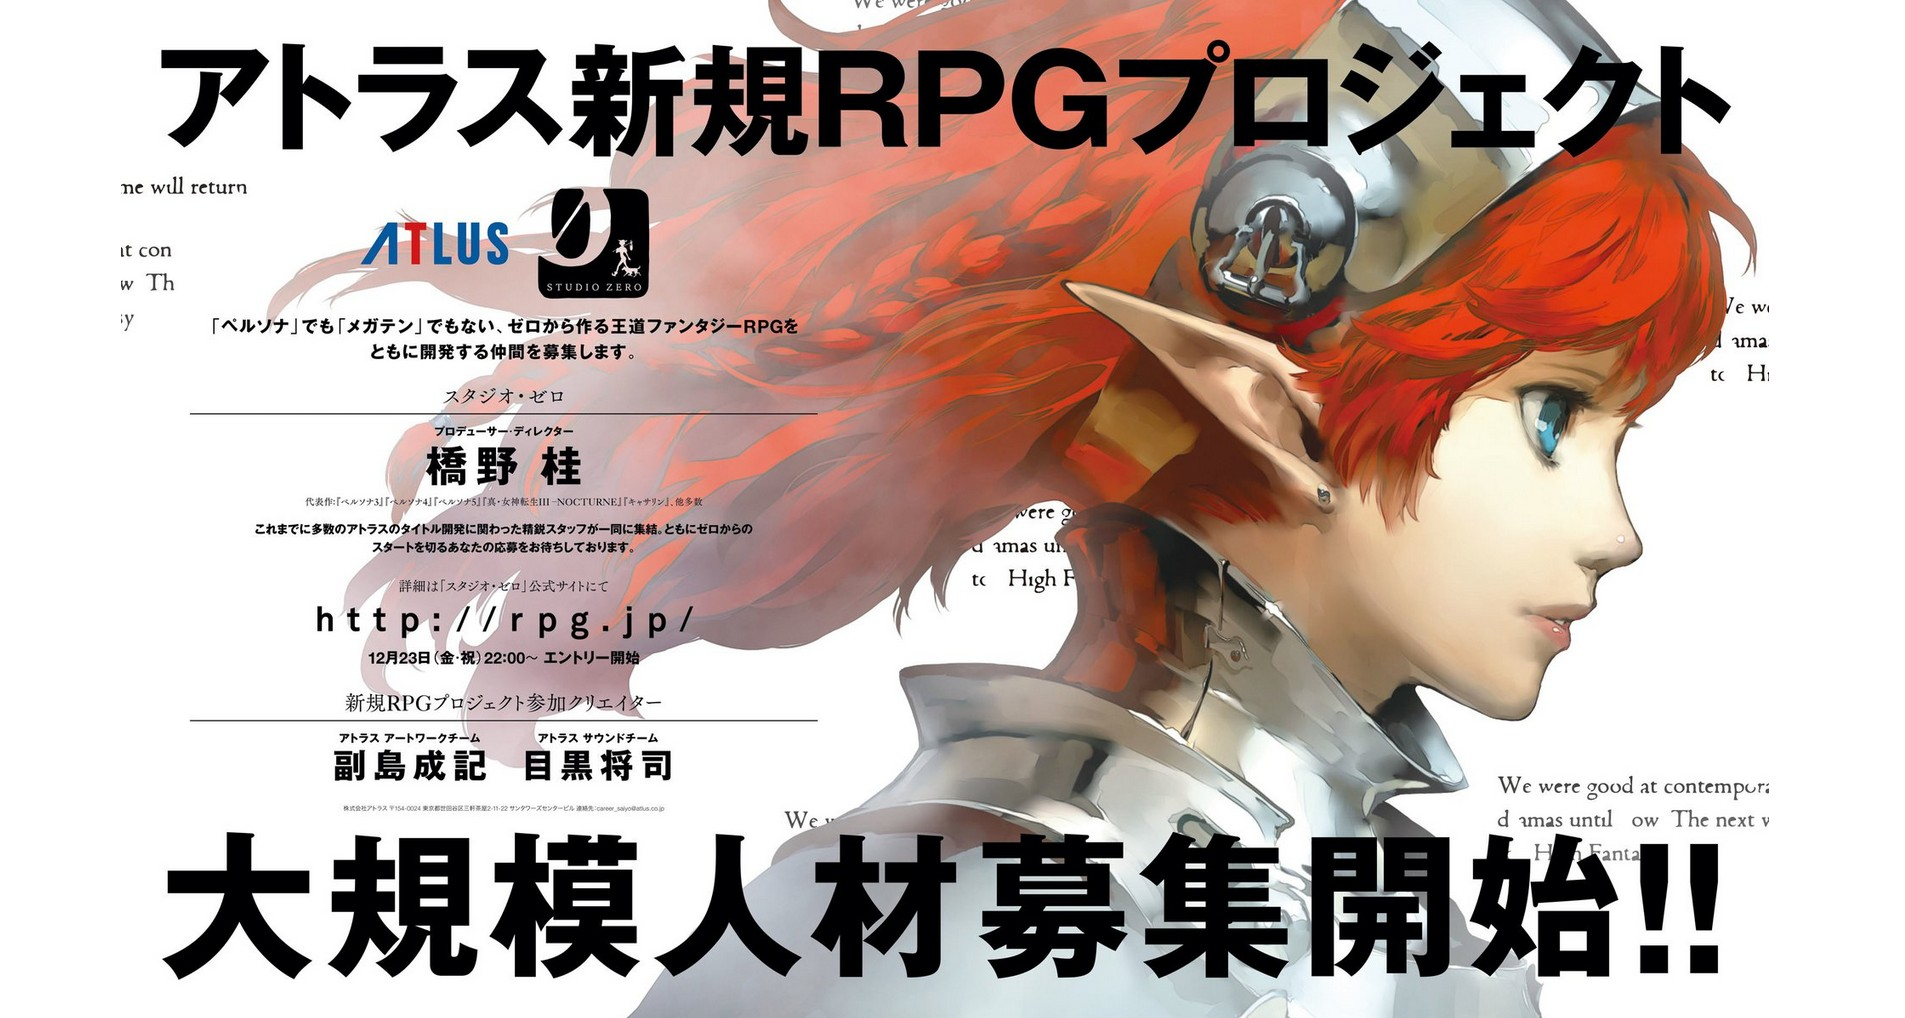 New JRPG series in the works from Persona Team